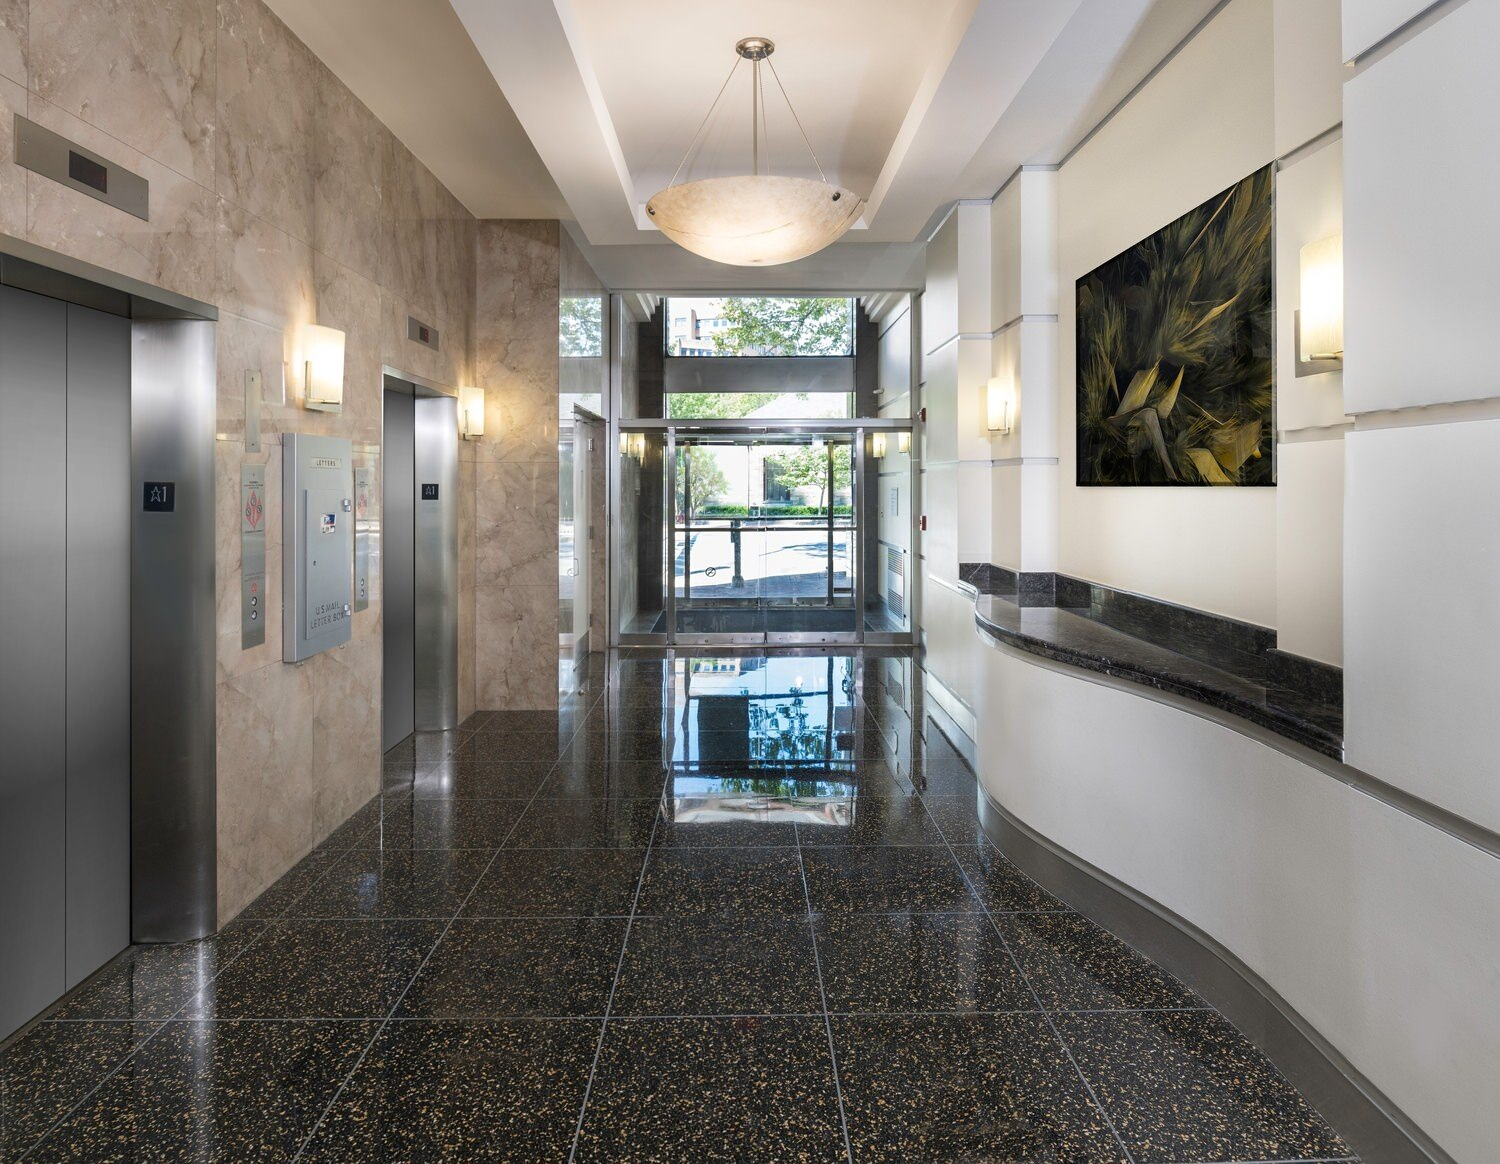 A tiled entryway with elevators.